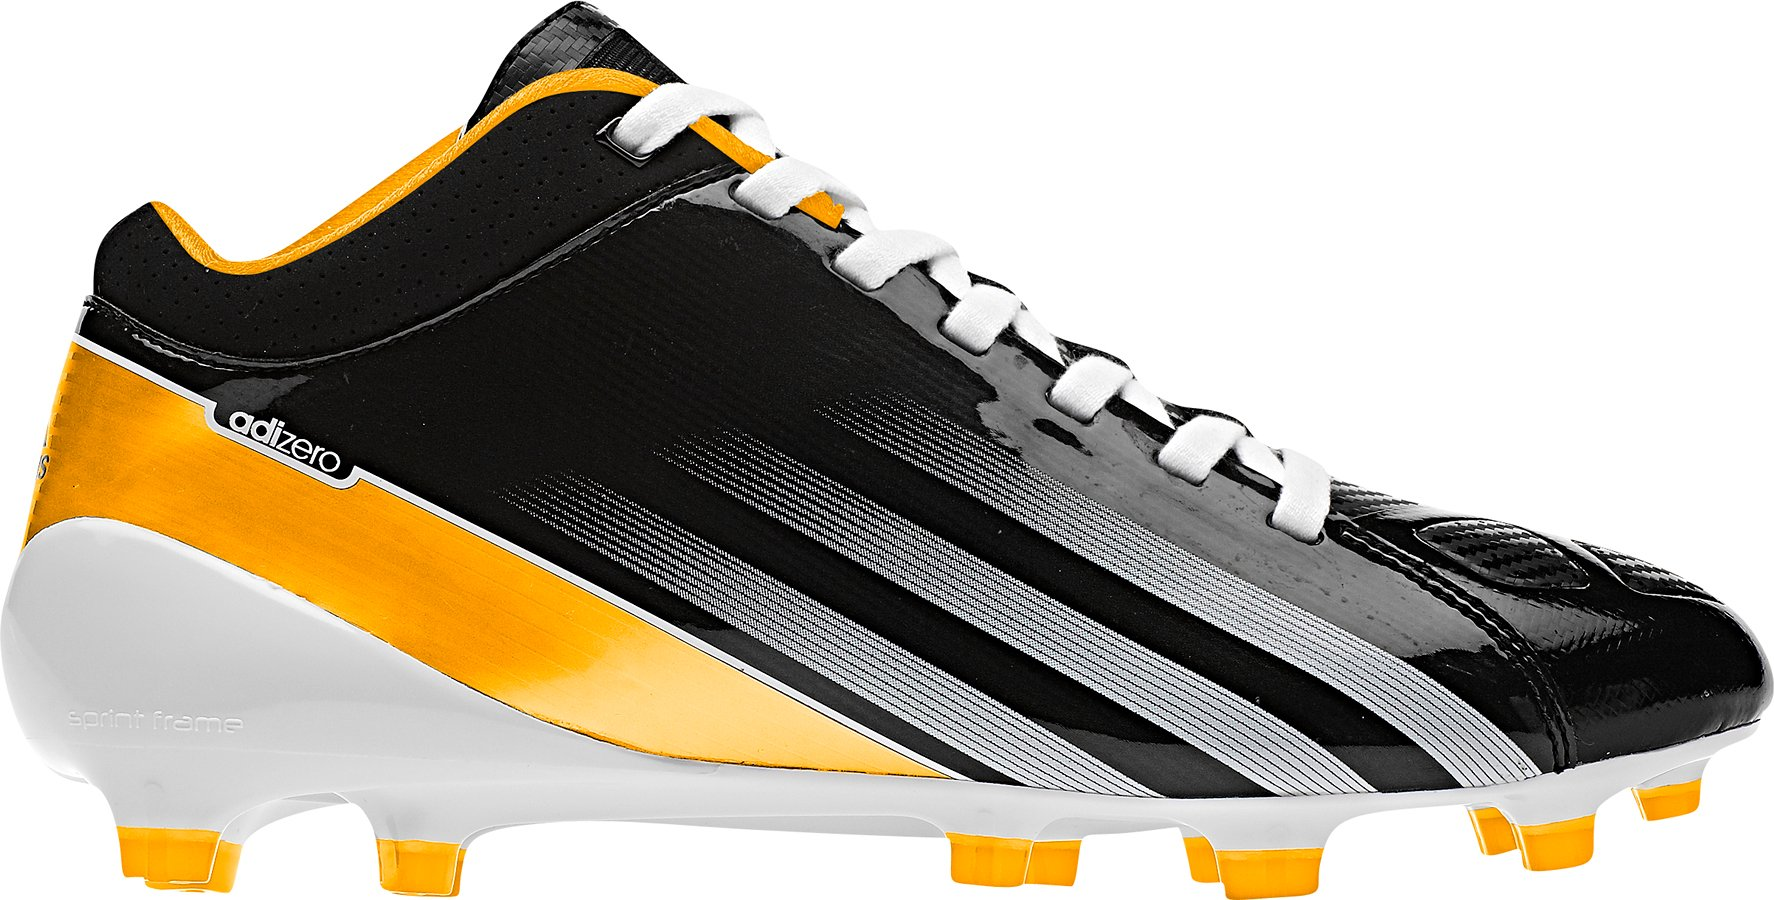 adidas adiZero 5-Star Mid - Officially Unveiled